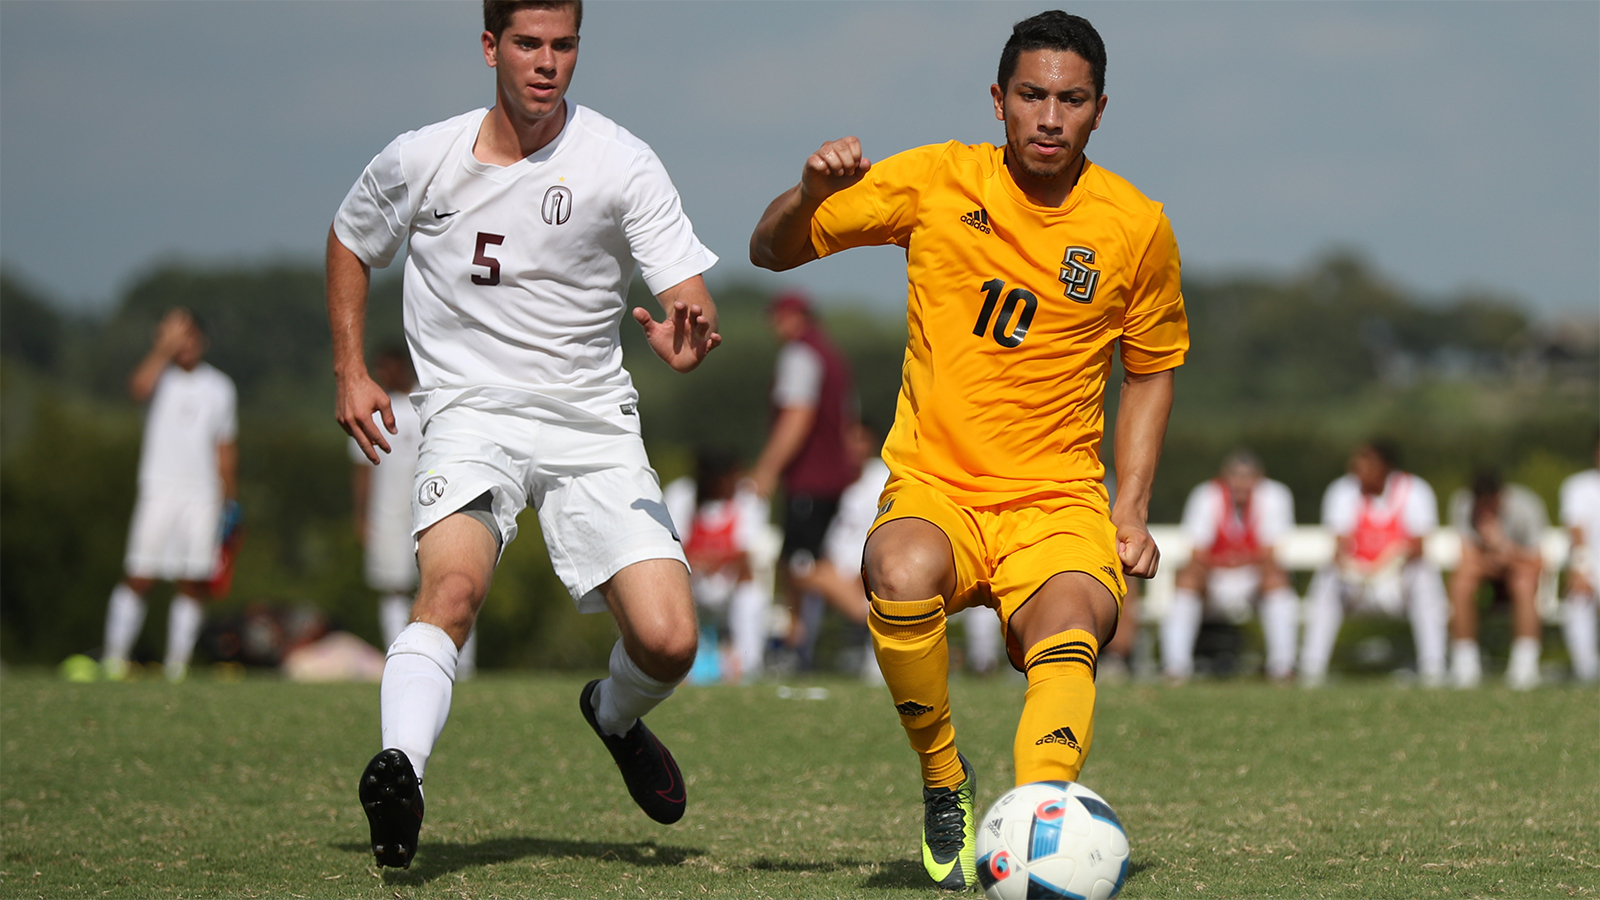 Lopez Punches Pirates Ticket to SCAC Tourney with Last Second Goal